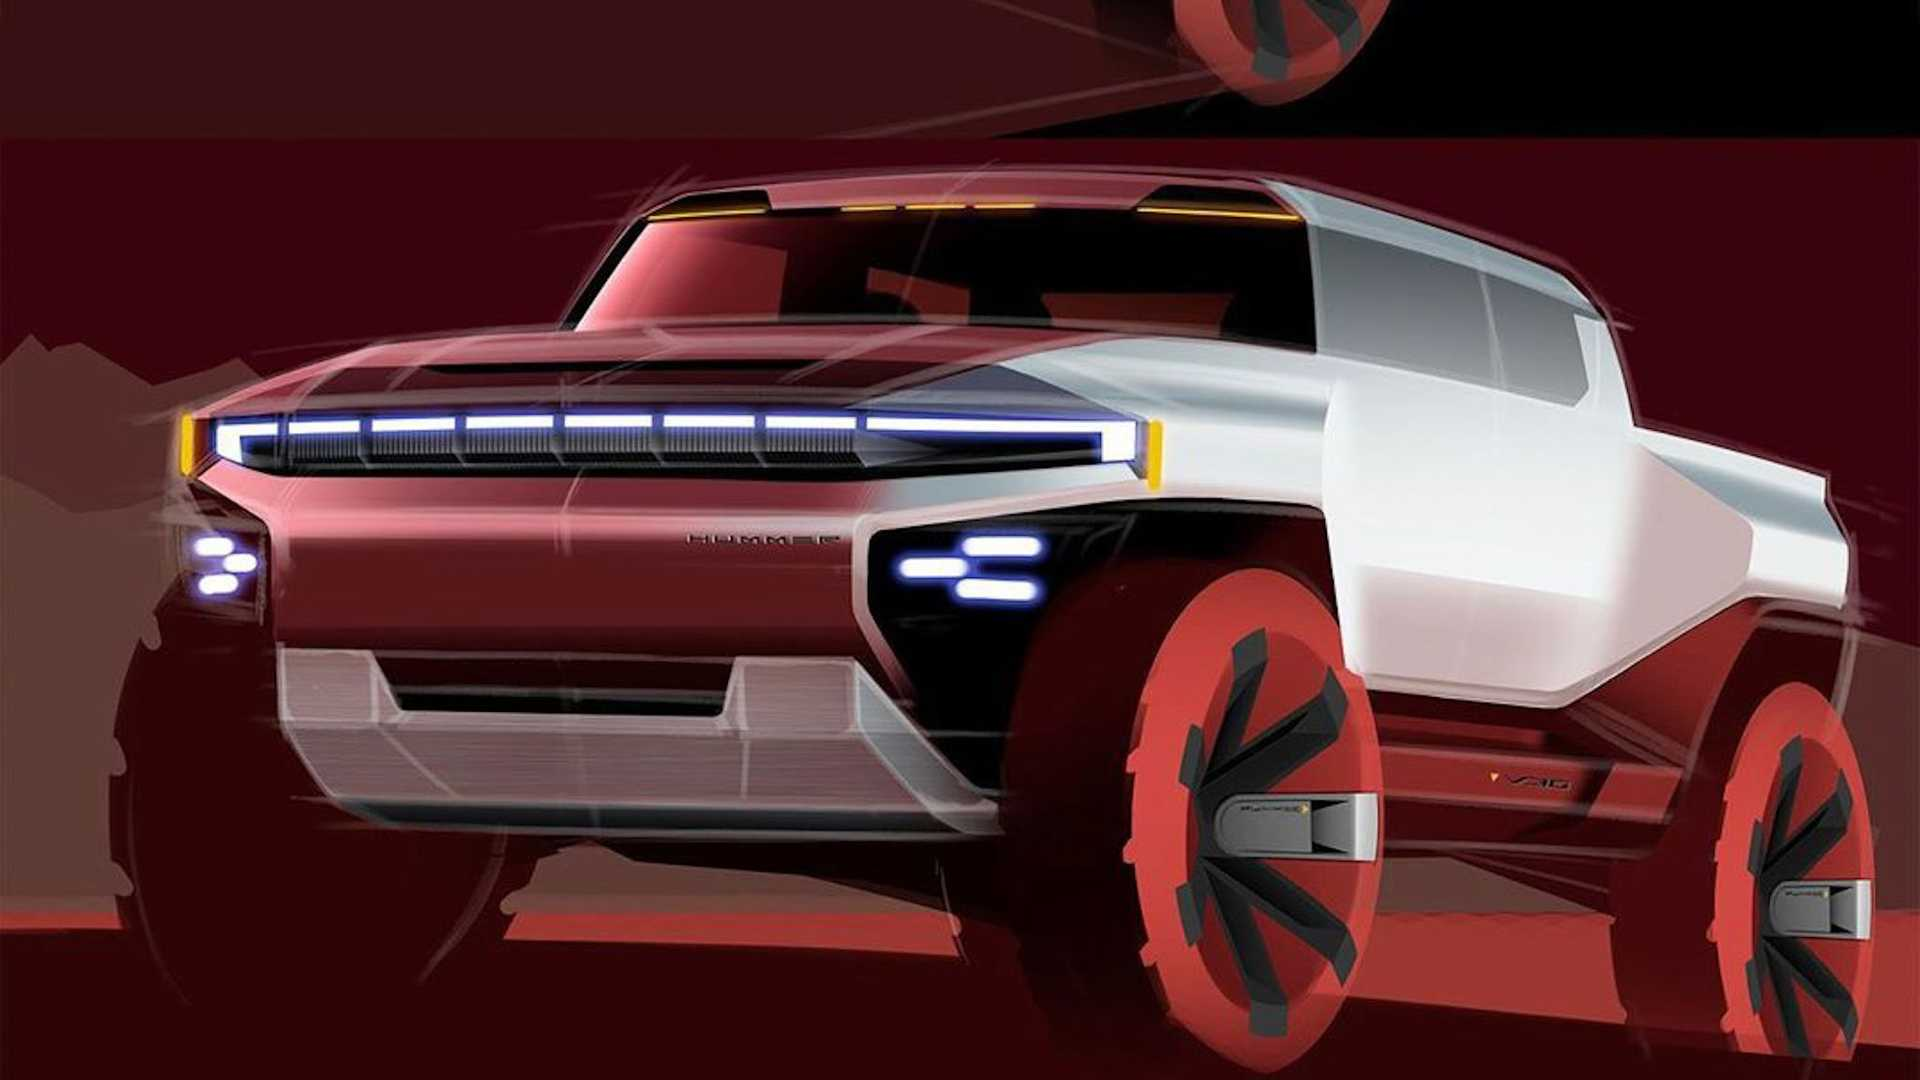 2022-gmc-hummer-ev-sketches-6